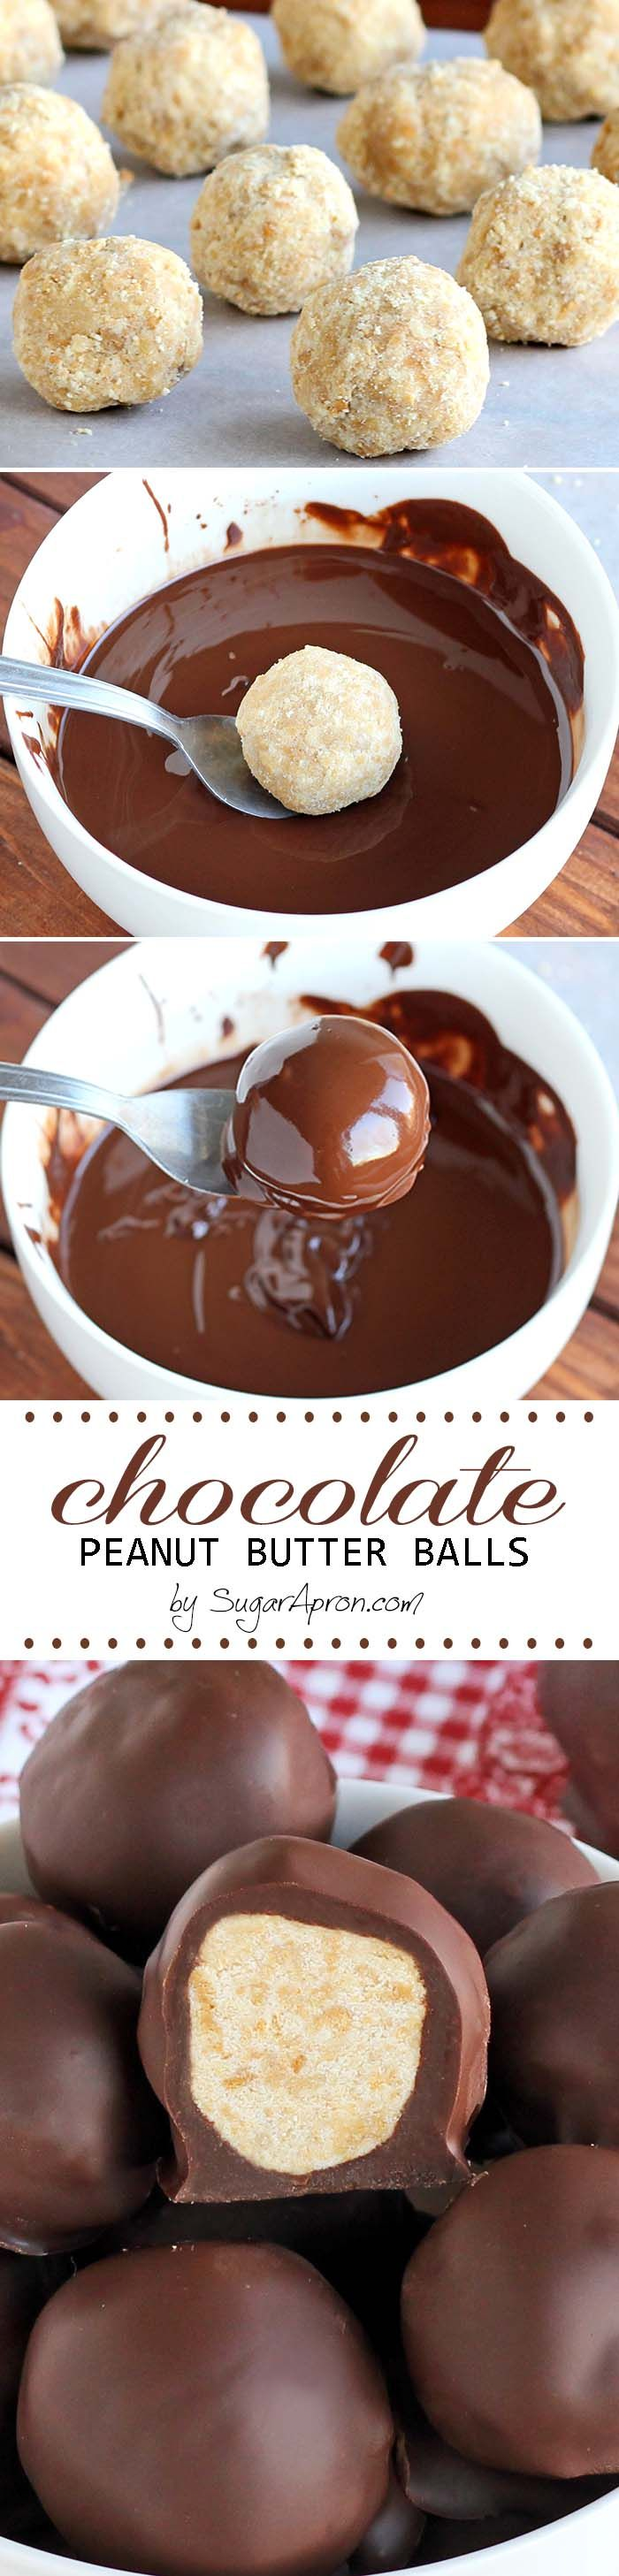 Chocolate Peanut Butter Balls only require a few ingredients and they are so easy to whip up. Oh, and they're super addicting....like chips...I bet, you can't eat just one.